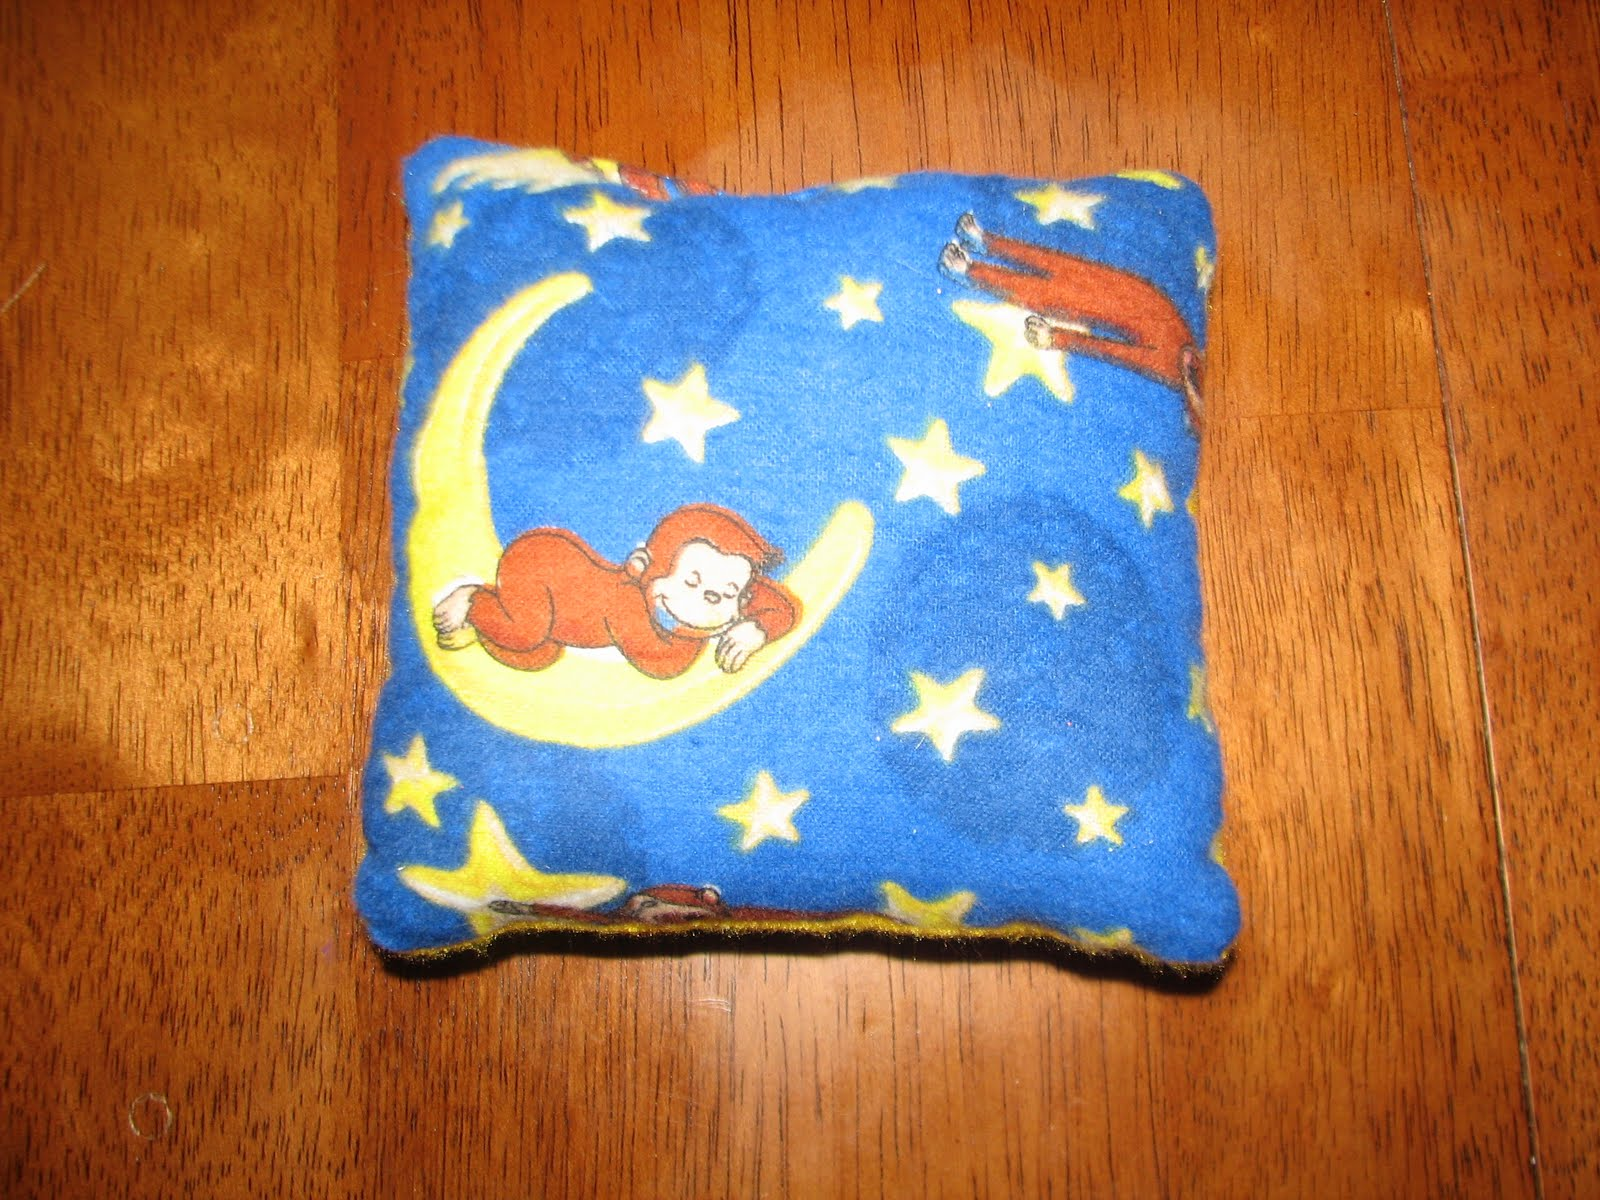 Izzie mac and me creation bean bags for Moon and stars fleece fabric